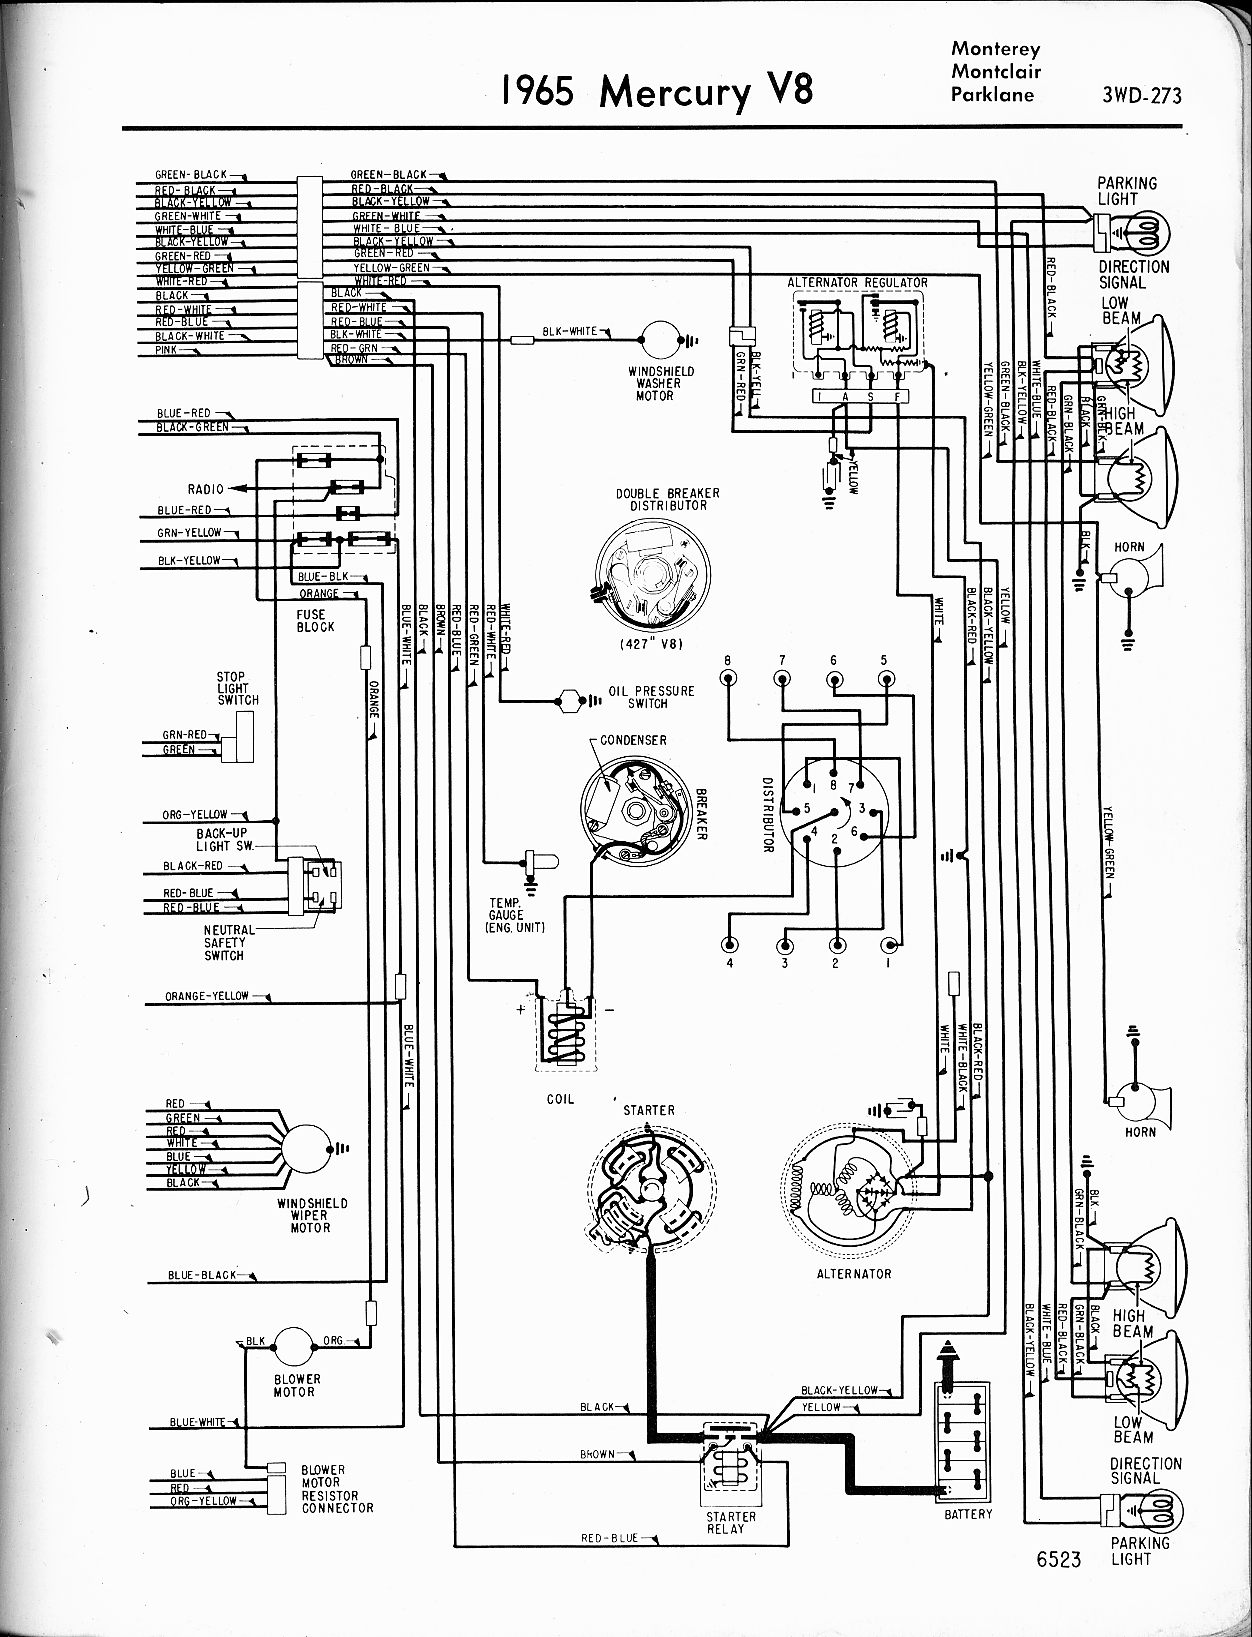 MWire5765 273 mercury wiring diagrams the old car manual project 67 cougar turn signal wiring diagram at gsmx.co